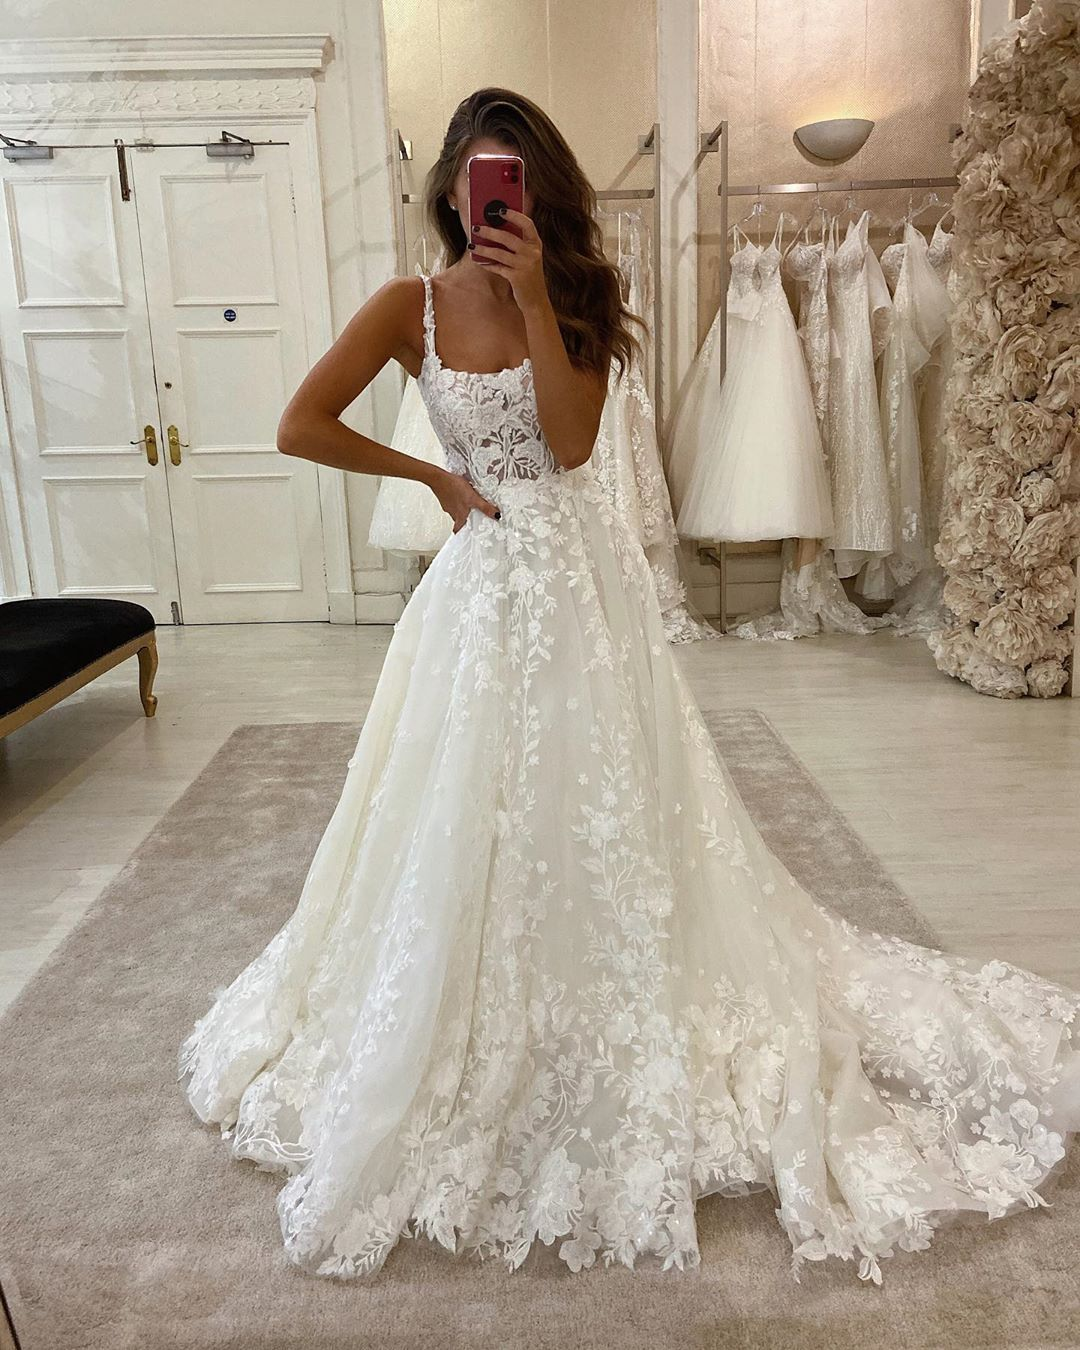 Eleganza Sposa On Instagram Trunk Show Preview We Are So Excited To Announce That Our Stunning Go Wedding Dresses Lace Wedding Dresses Ball Gowns Wedding